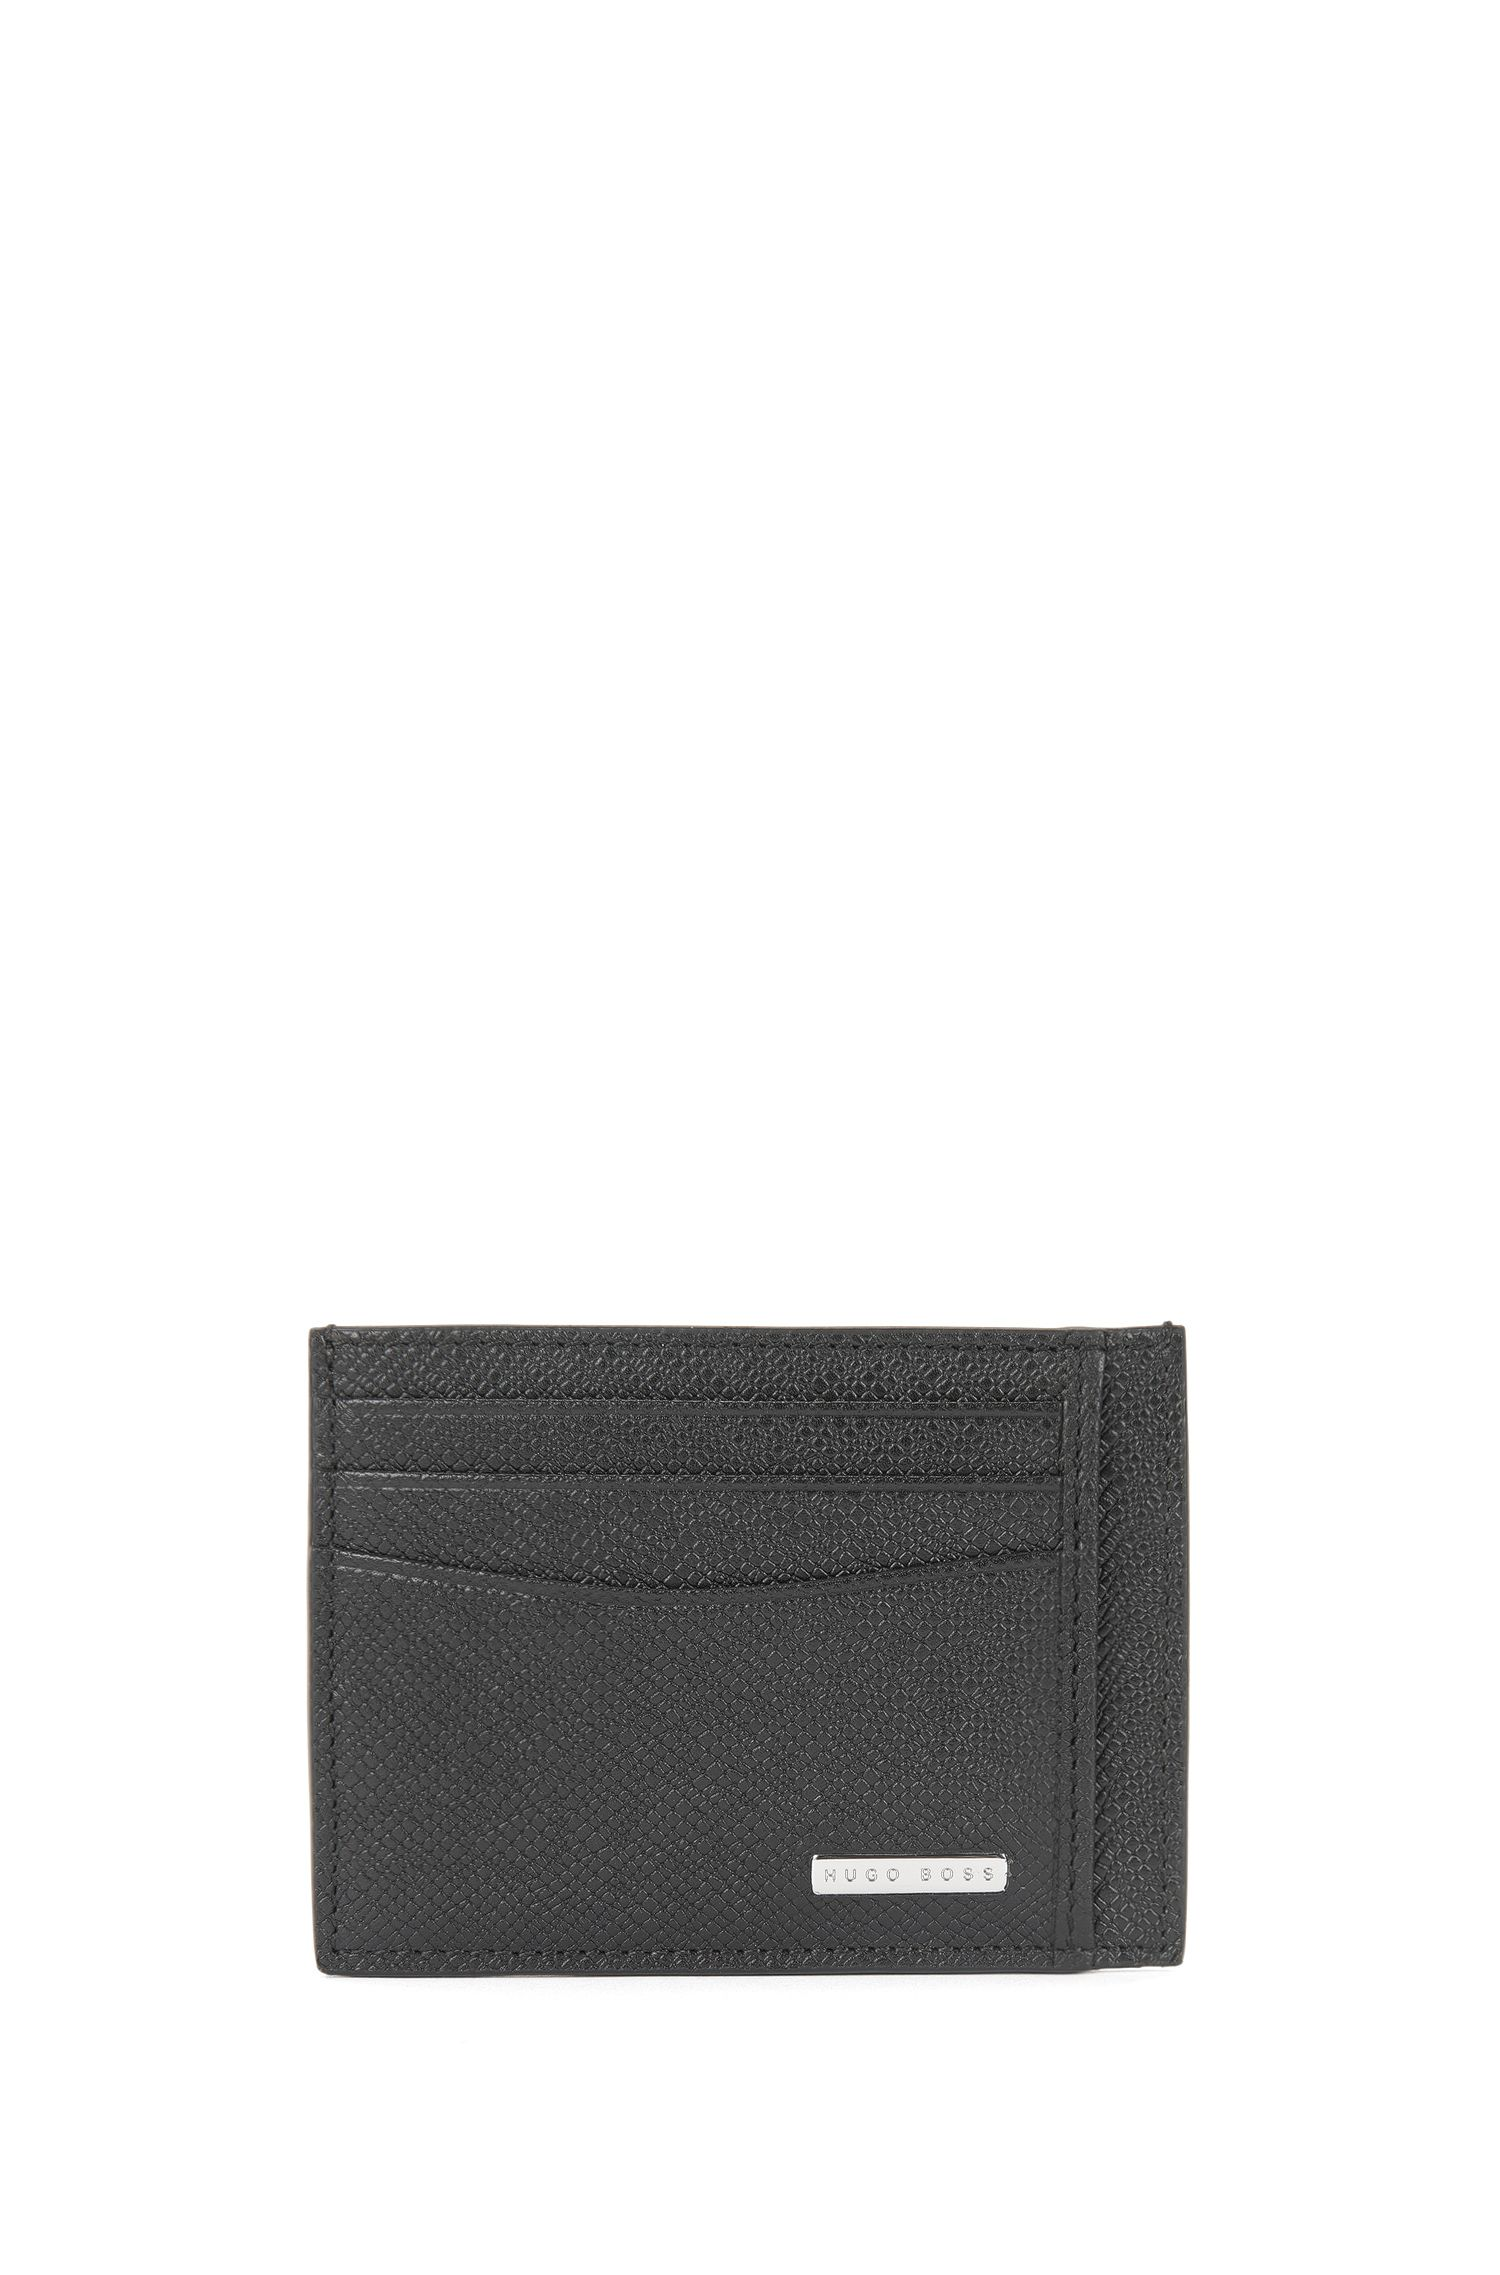 Porte-cartes Signature Collection, en cuir palmellato, Noir